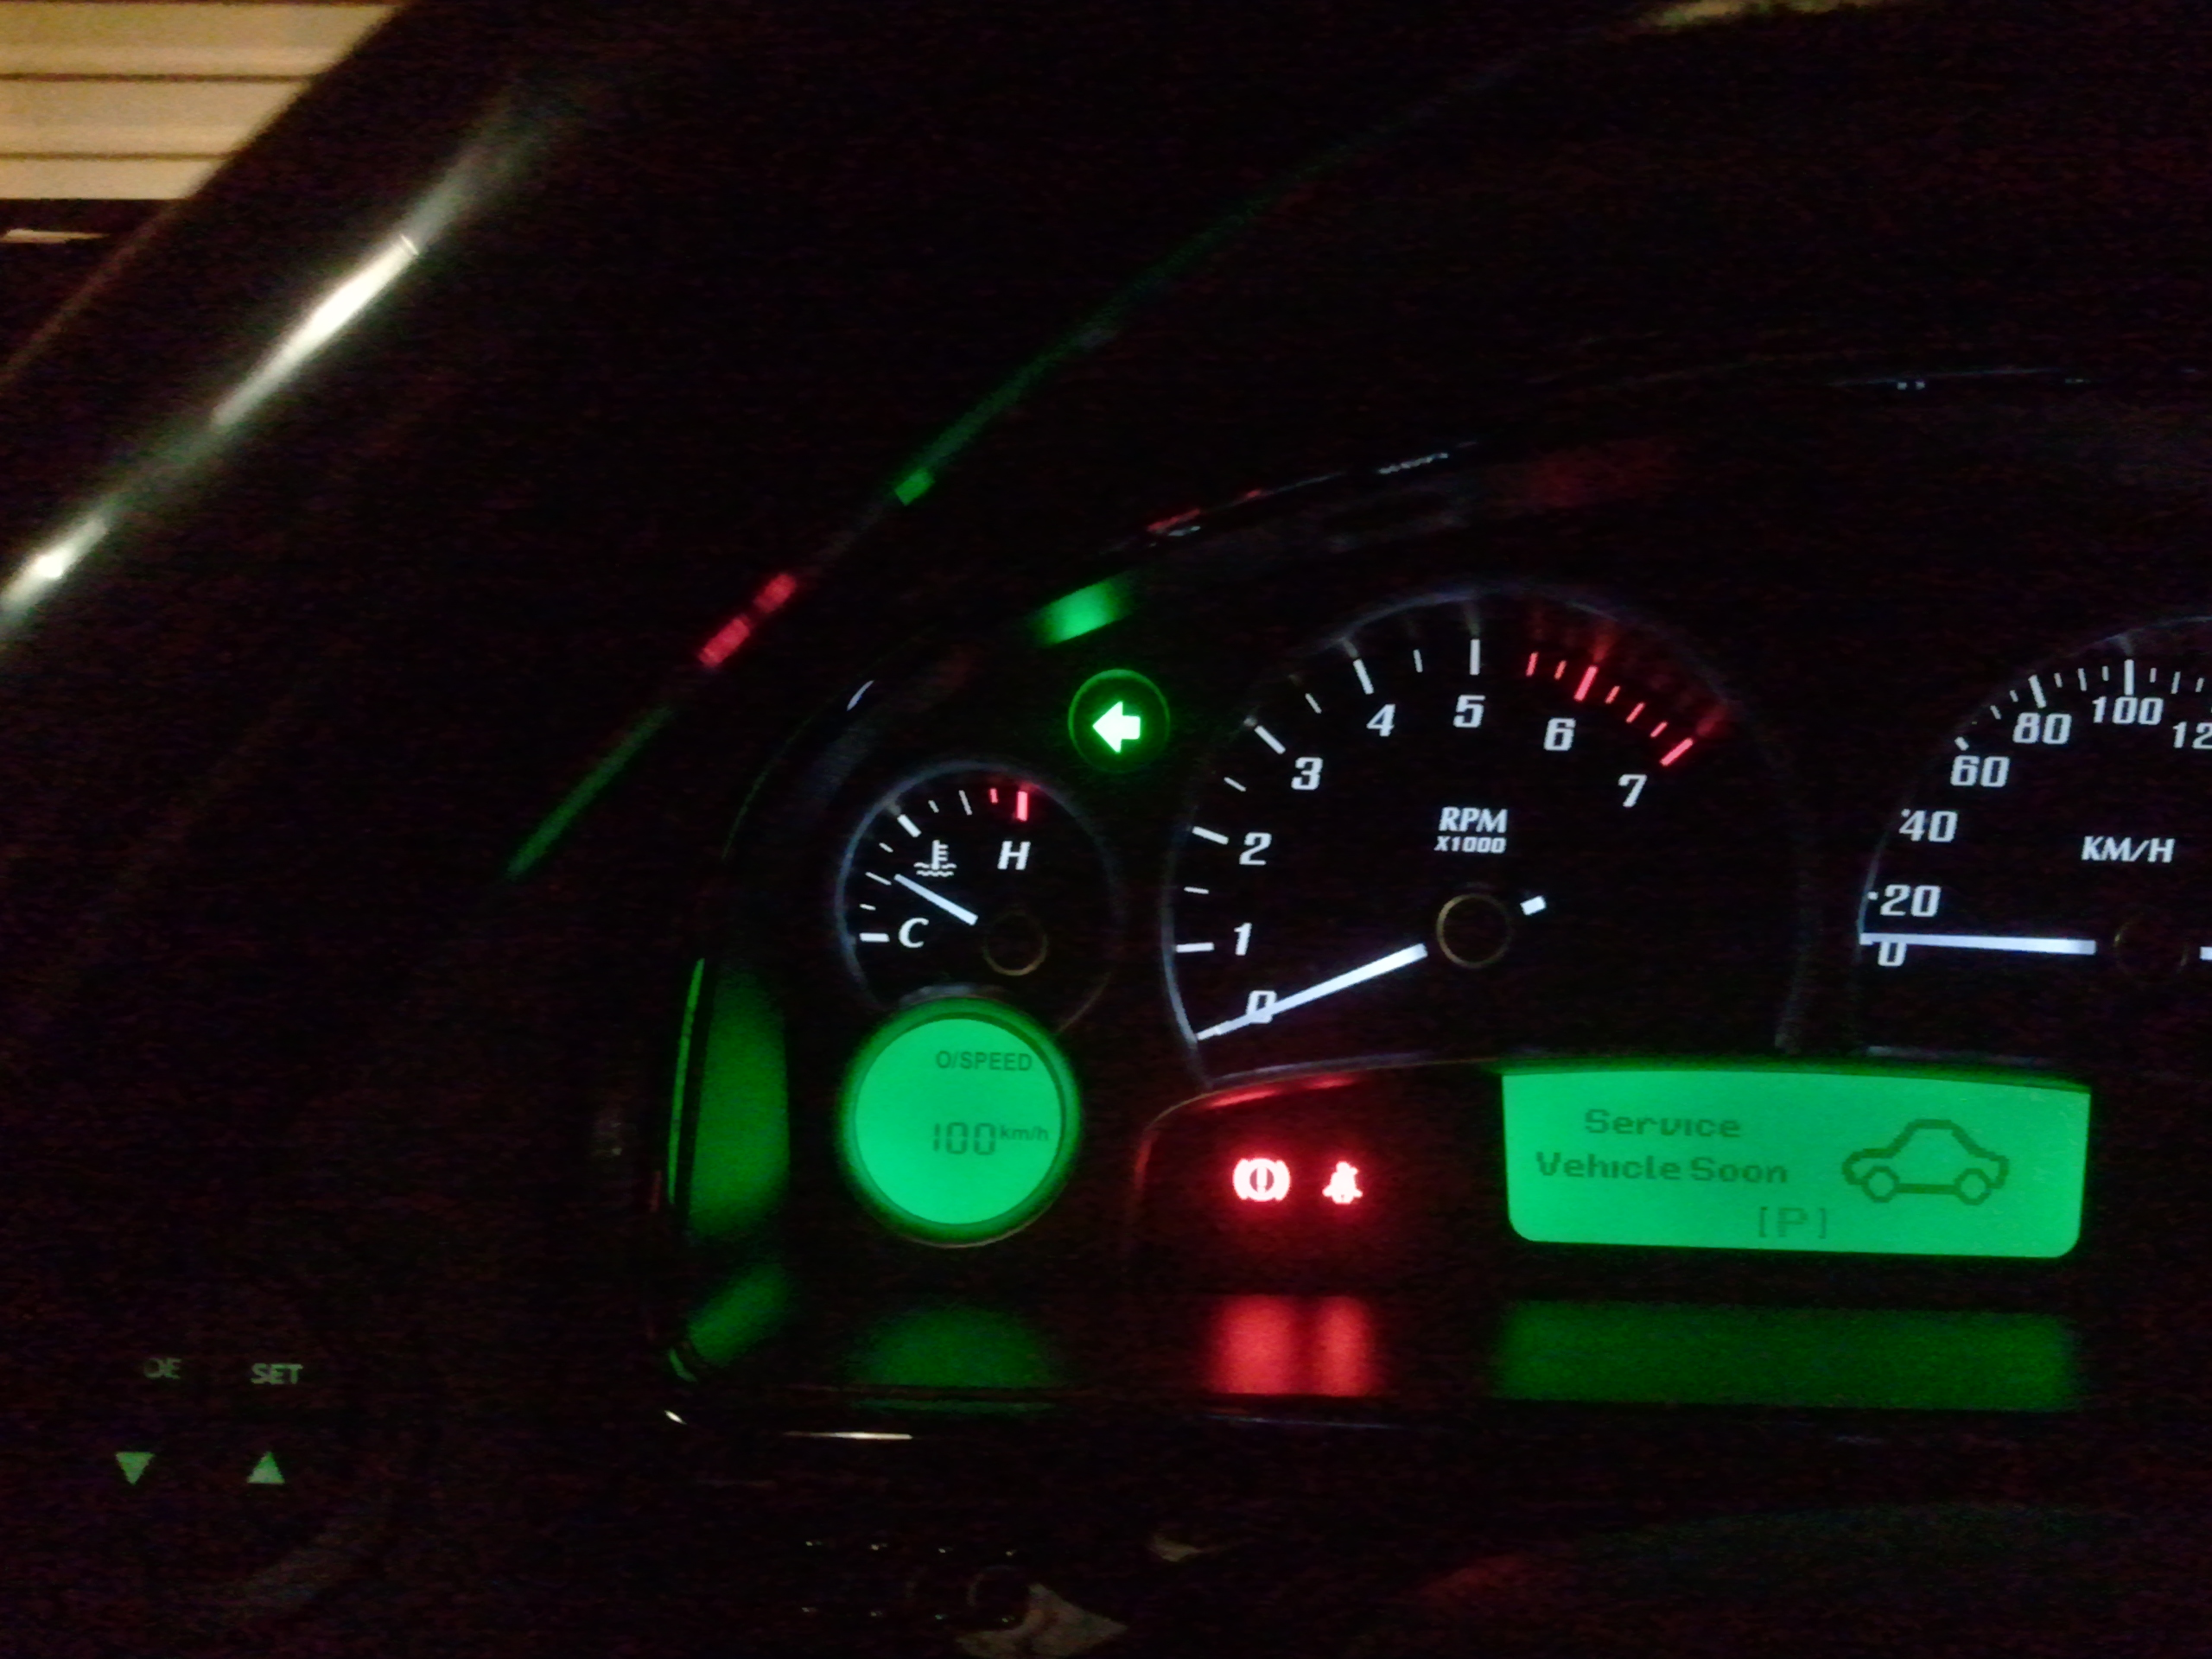 Holden Indicator wont turn off?